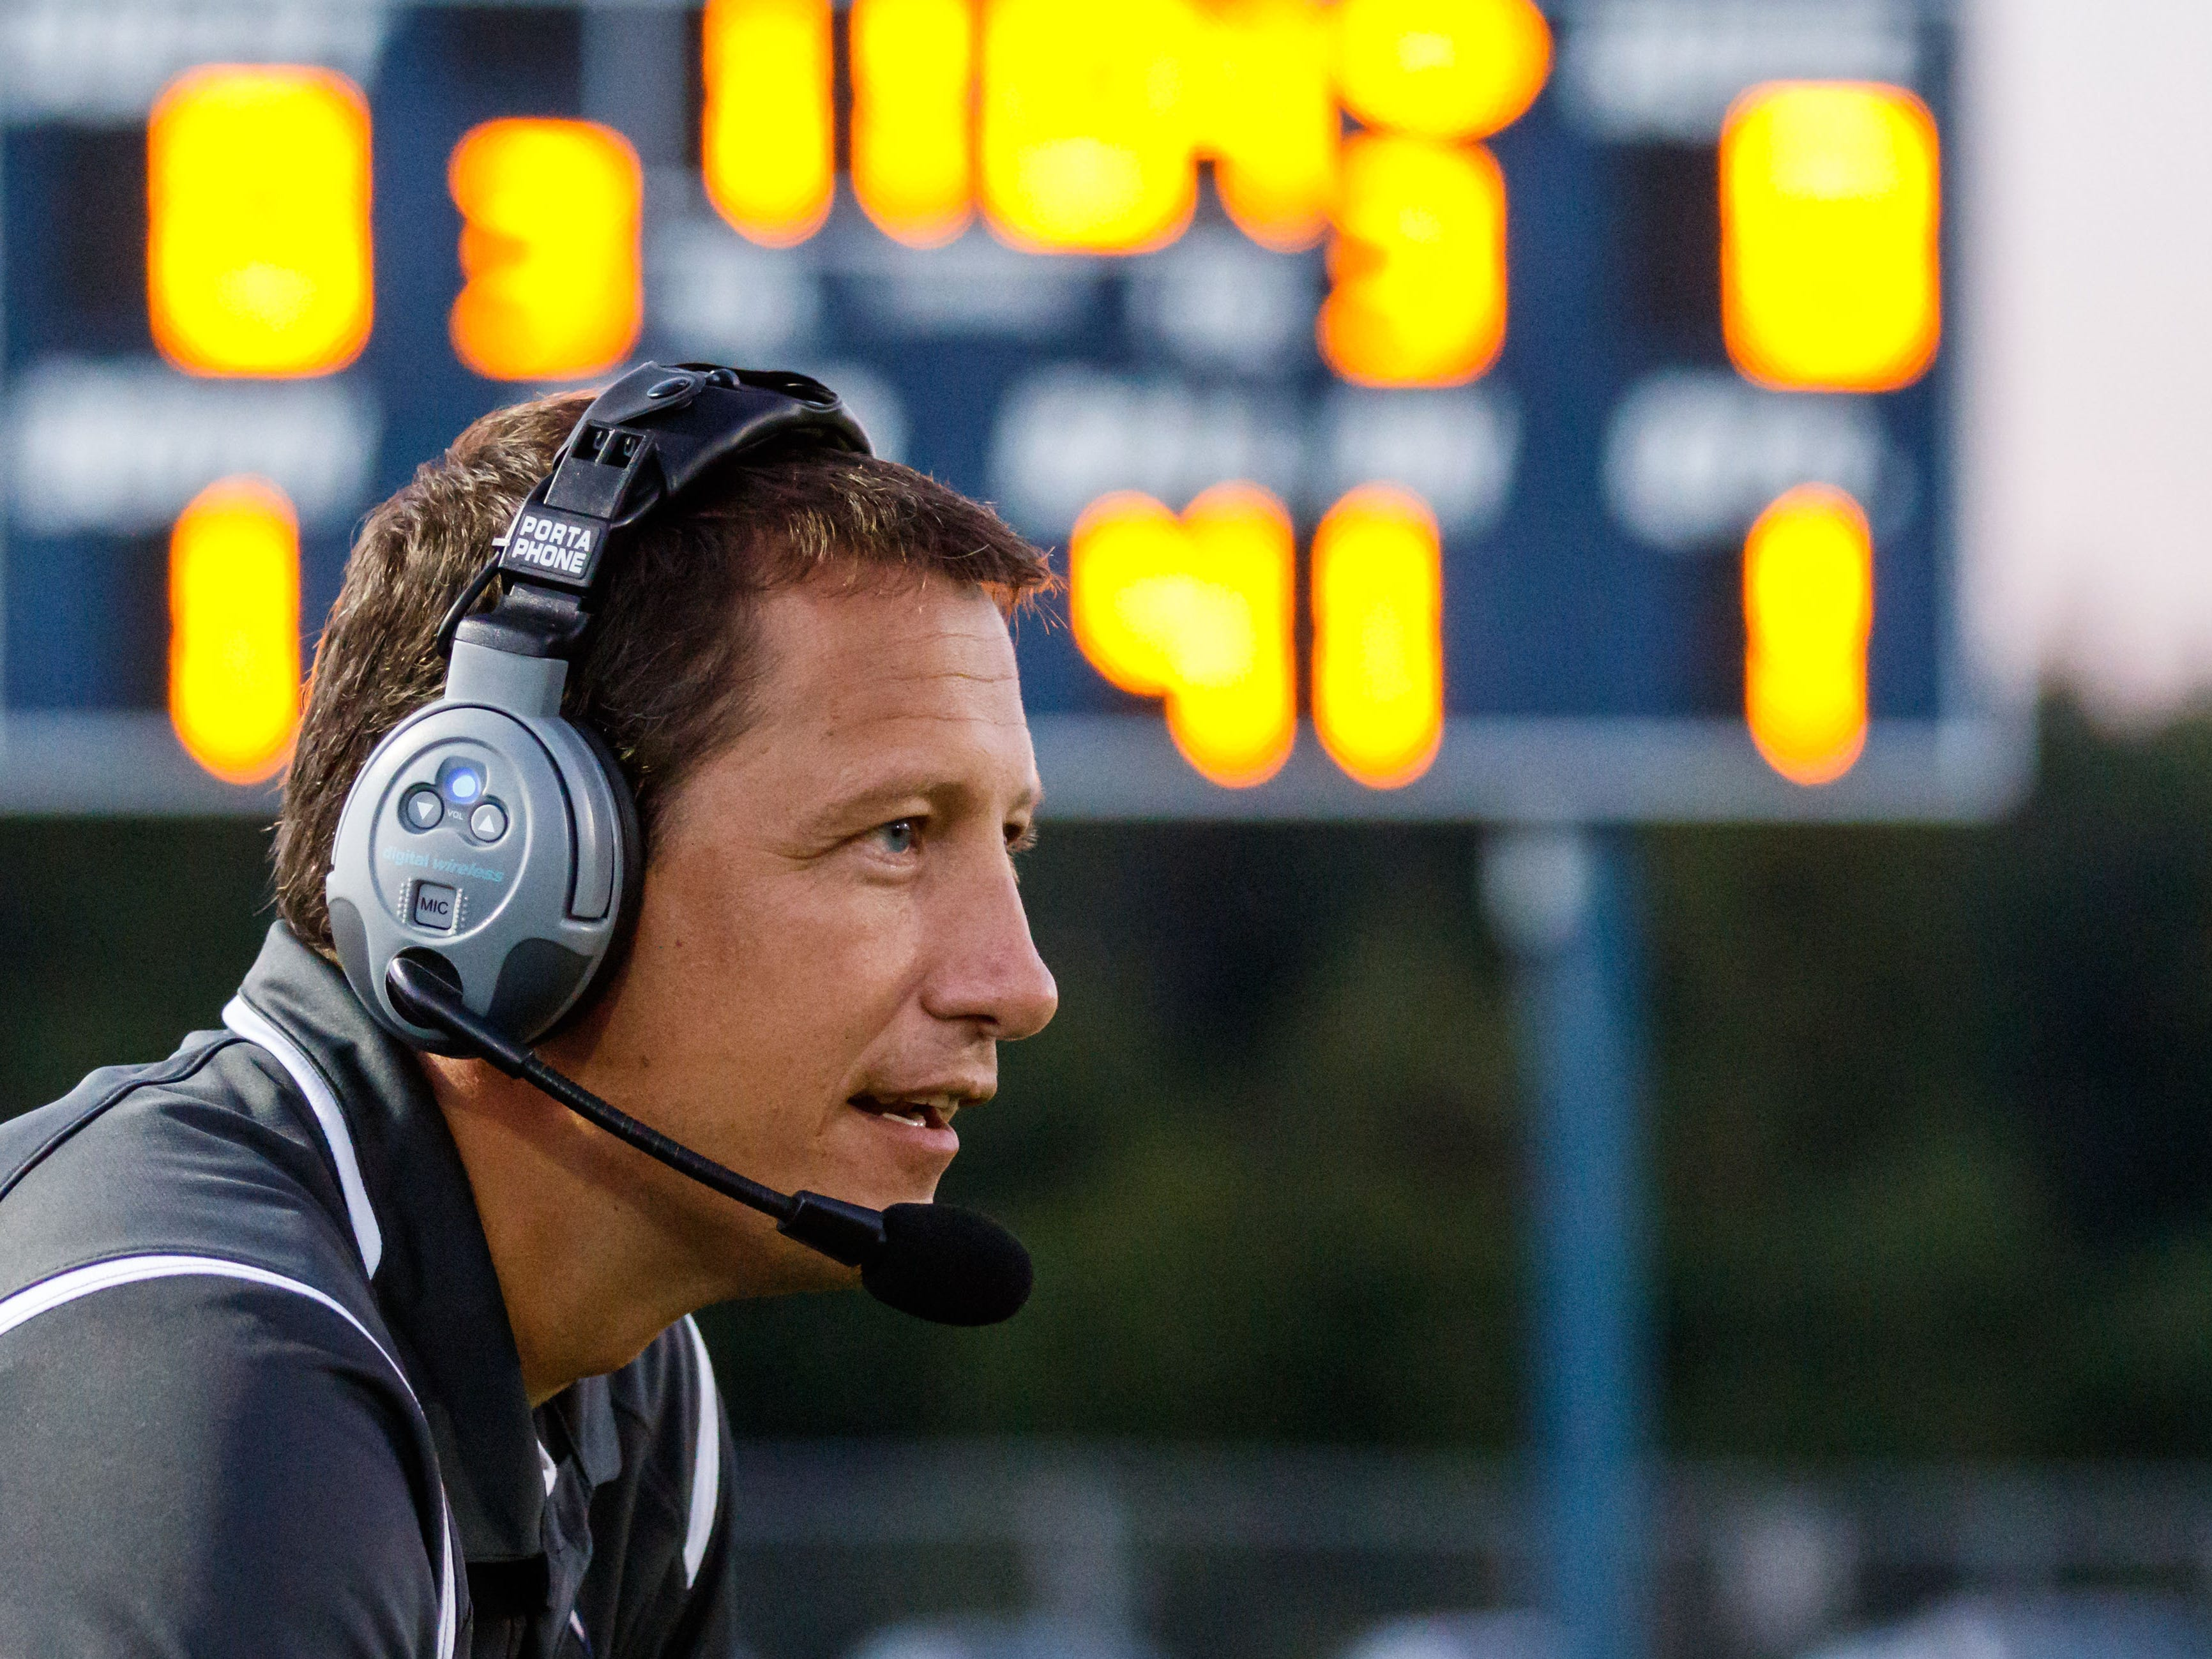 Lake Country Lutheran head coach Greg Brazgel keeps a watchful eye on the action during the game at home against University School of Milwaukee on Thursday, Sept. 13, 2018.